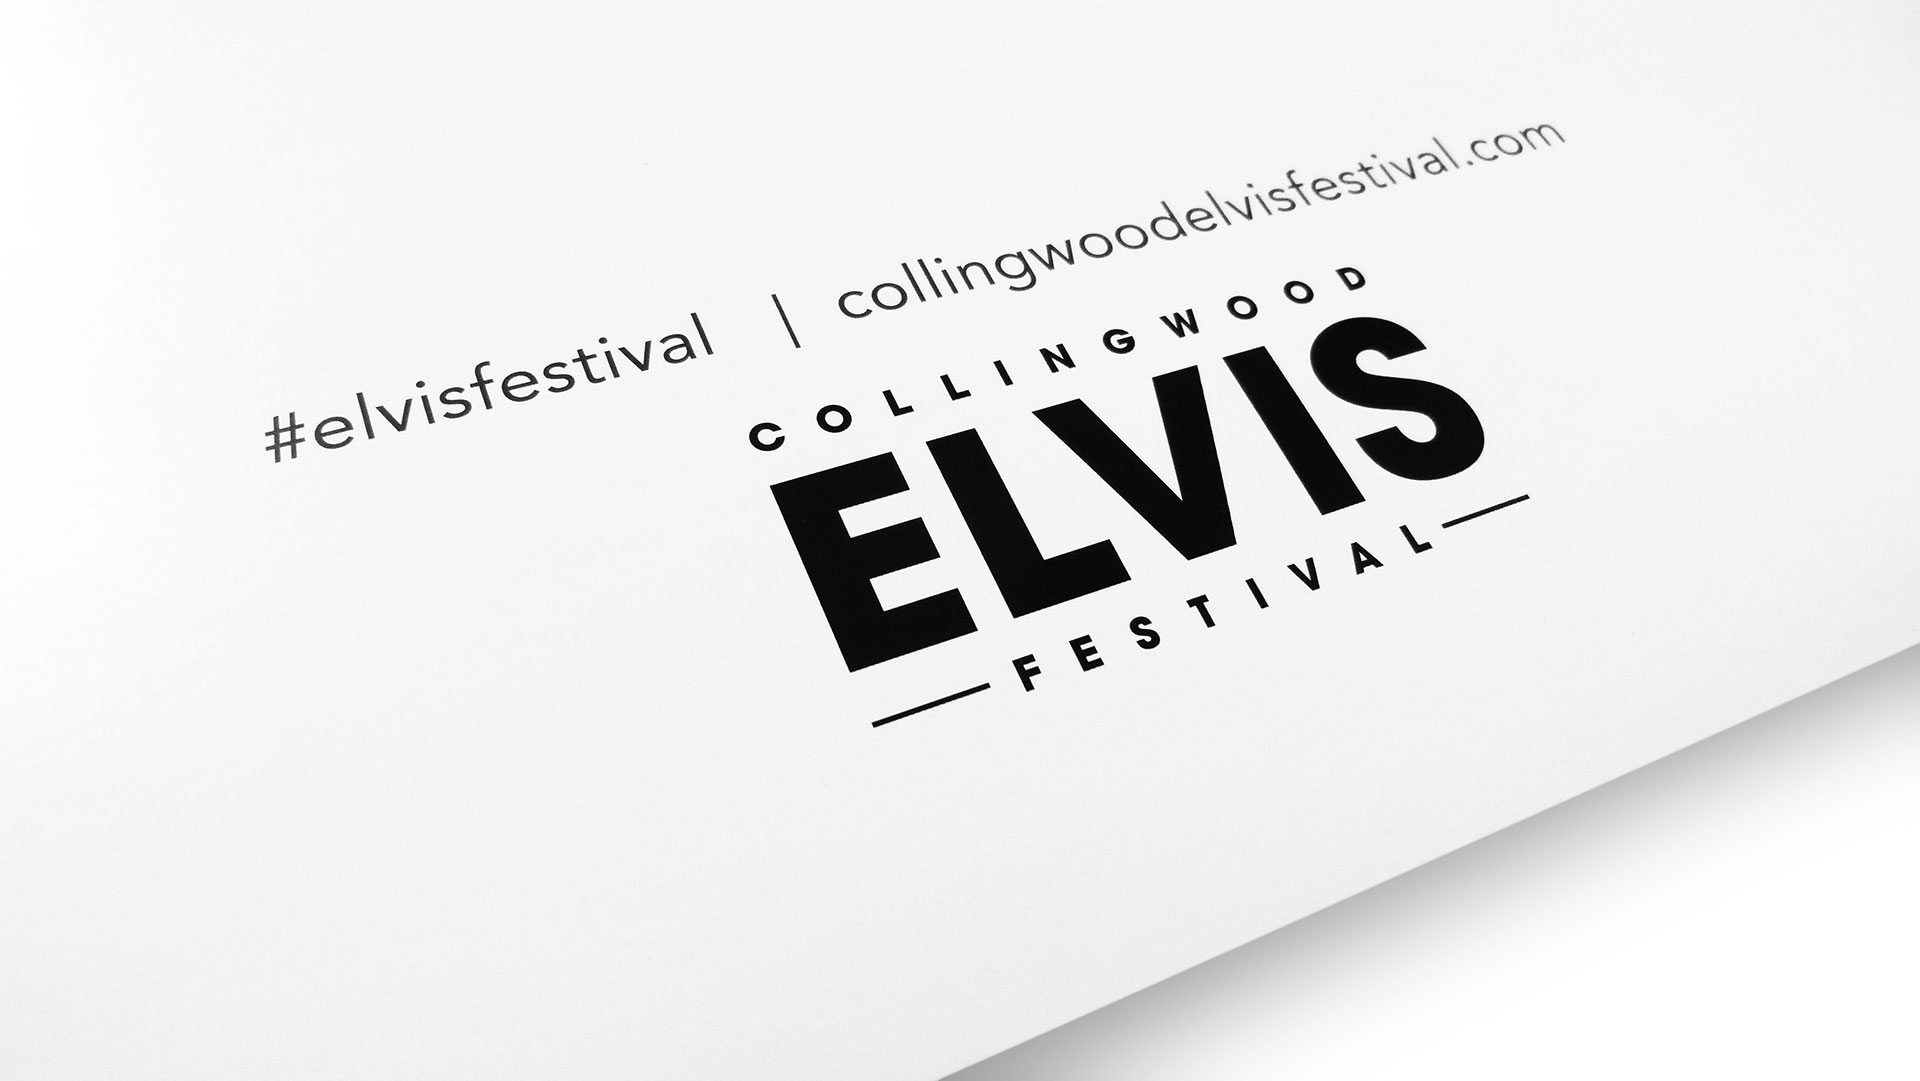 Collingwood Elvis Festival Poster Series - PaperSpecs